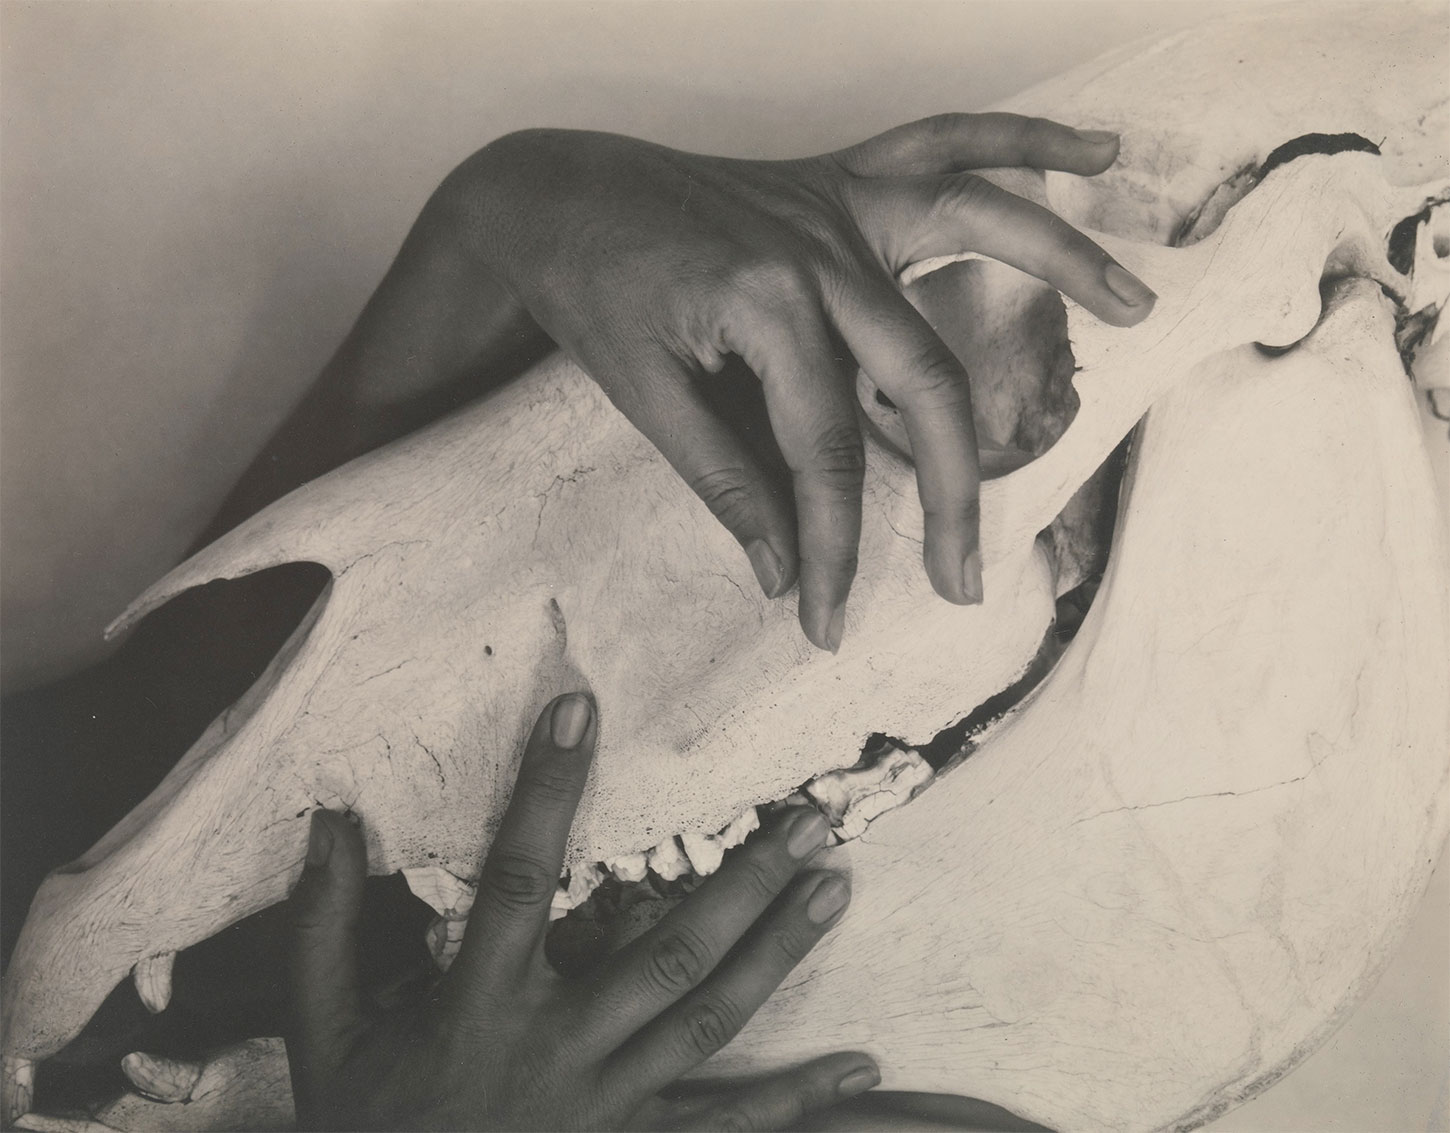 Photograph of Georgia O'Keeffe's Hands and Horse Skull, 1931.